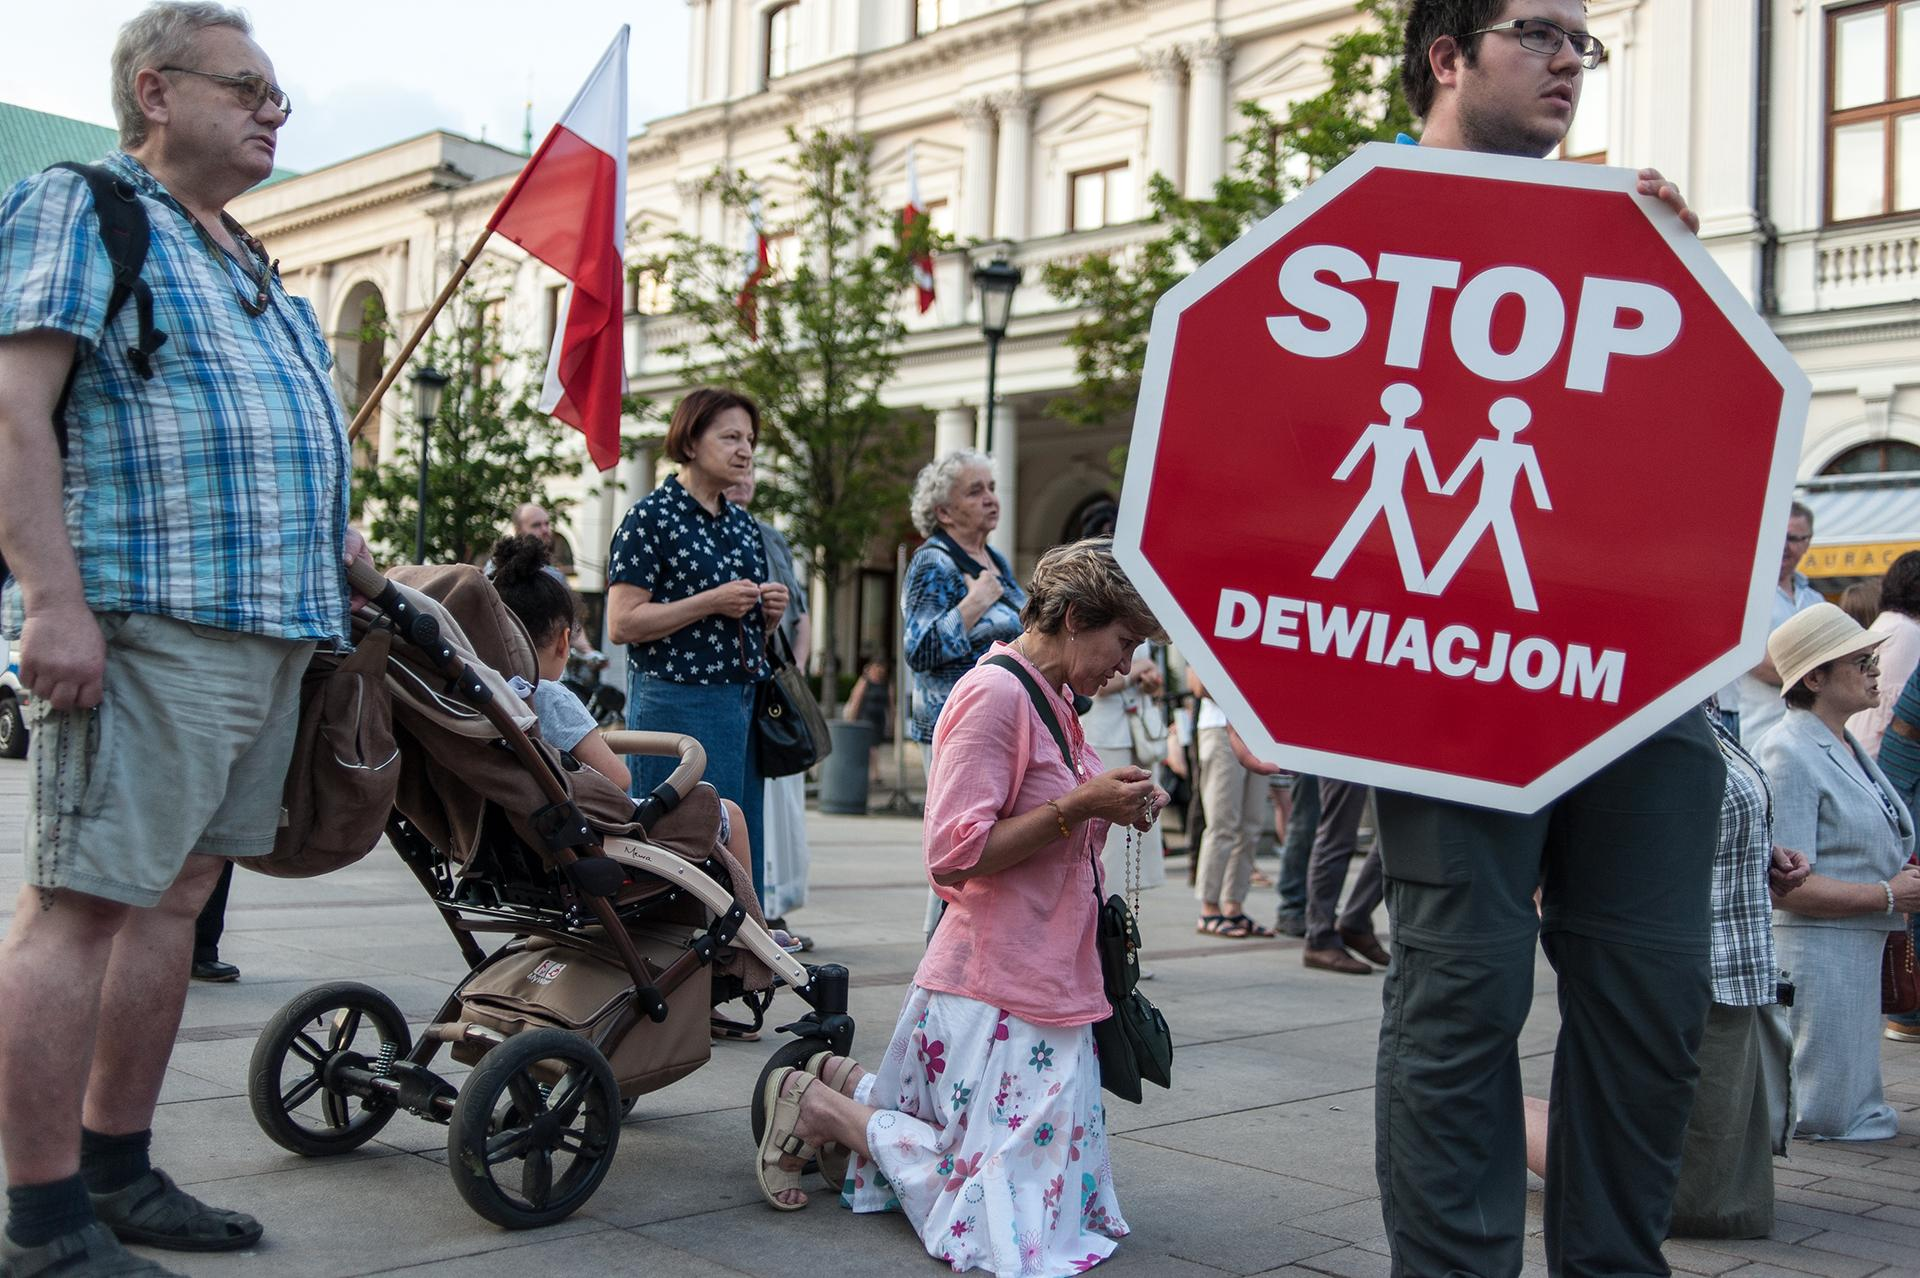 """Photo 3: Public prayer against the """"gender ideology"""" and to apologize for the sin of sodomy. These types of prayers are organized in several cities in Poland by private religious associations and foundations with the support and participation of the Catholic Church. / Warsaw, city center, 2019."""